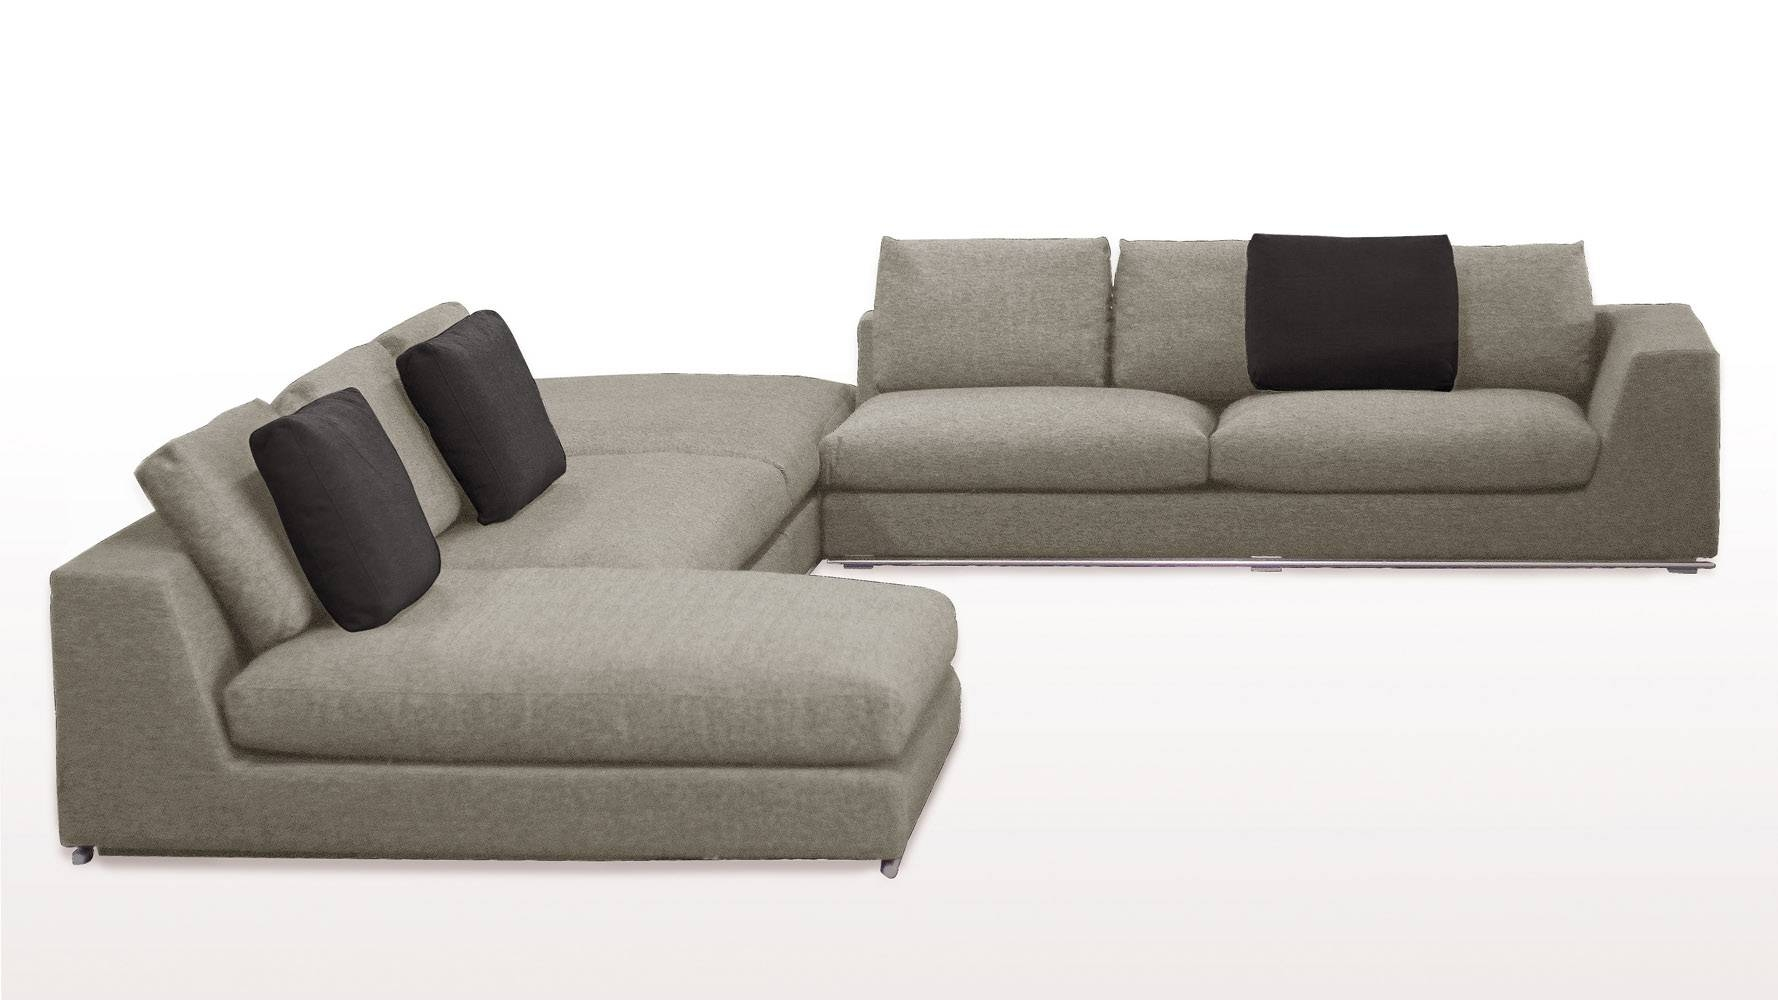 Comodo Sectional Sofa With Ottoman - Grey | Zuri Furniture with regard to Sofa With Chaise And Ottoman (Image 10 of 30)